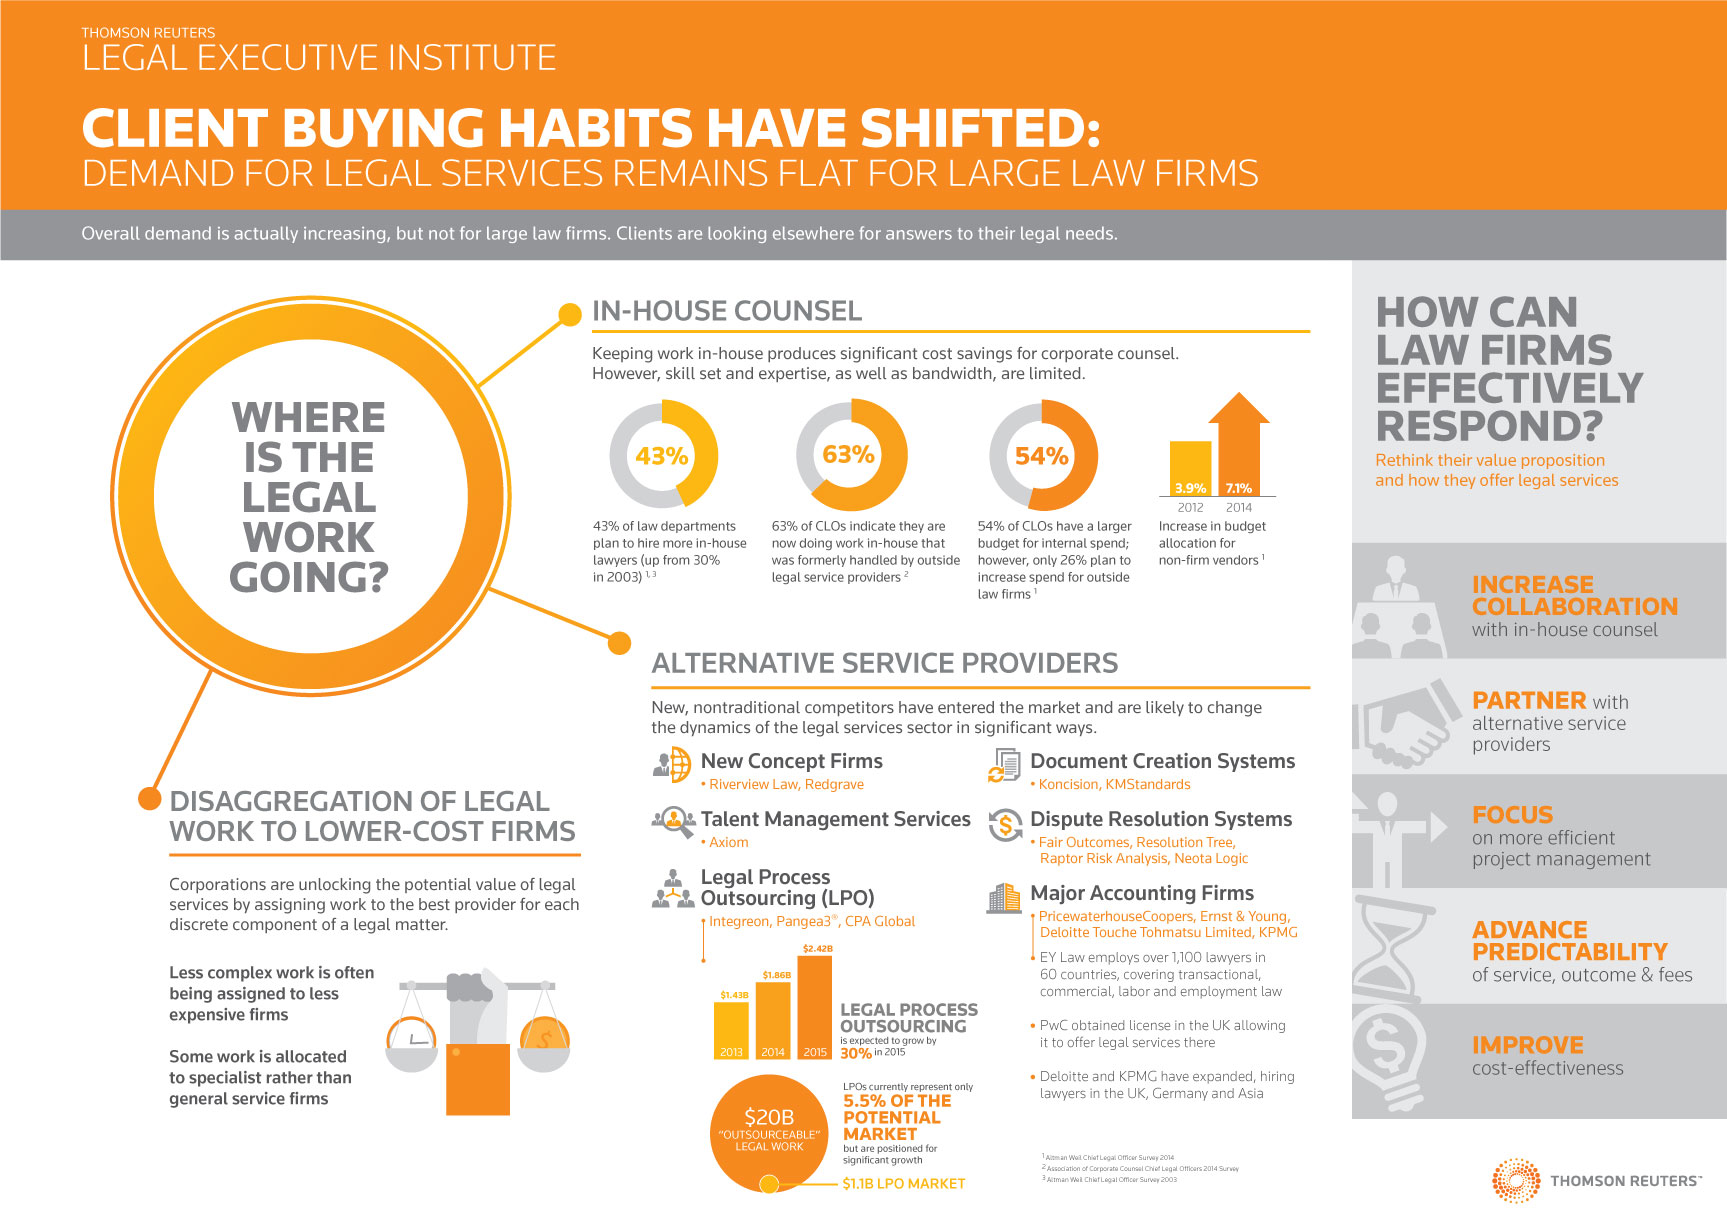 Client buying habits have changed